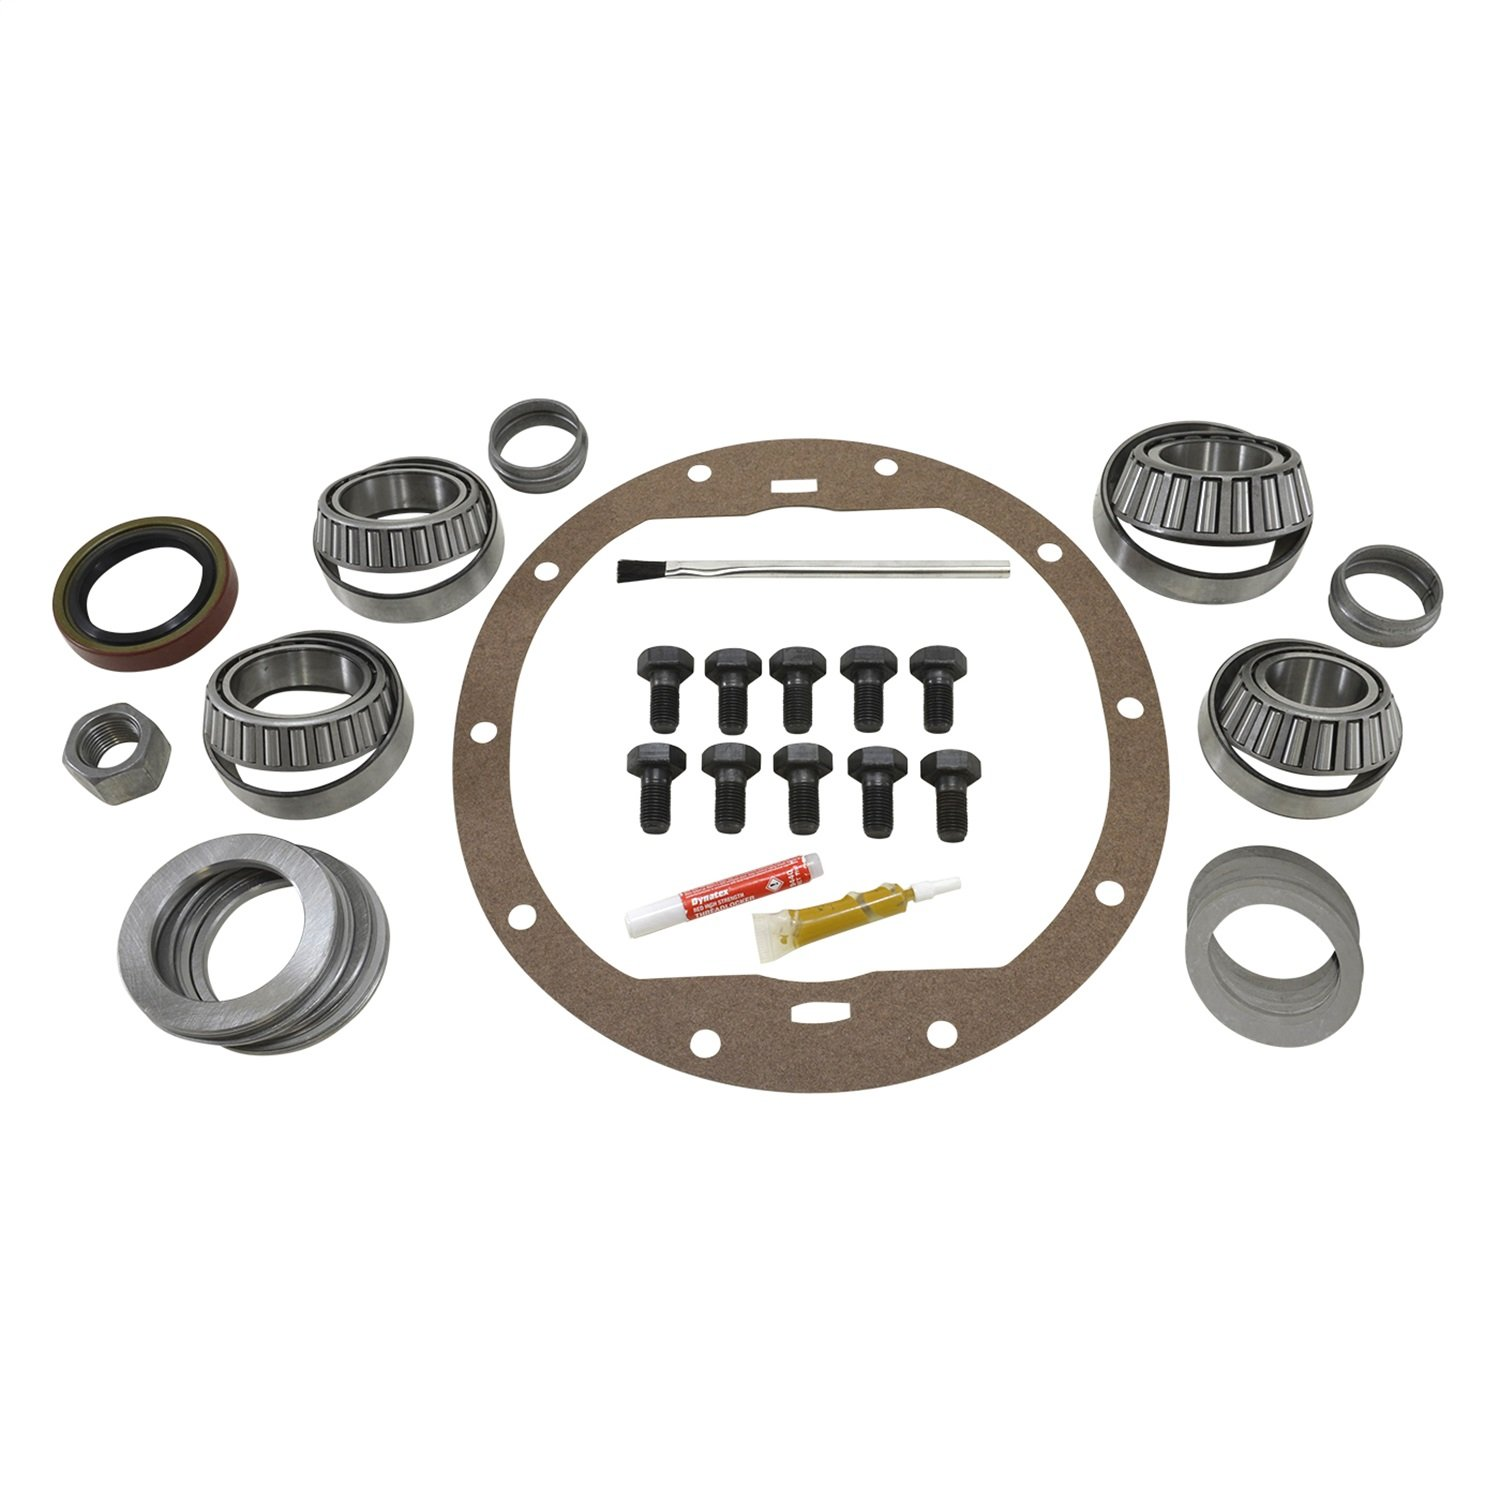 Yukon ZKGM8.5-HD Master Overhaul Kit for GM 8.5'' Differential